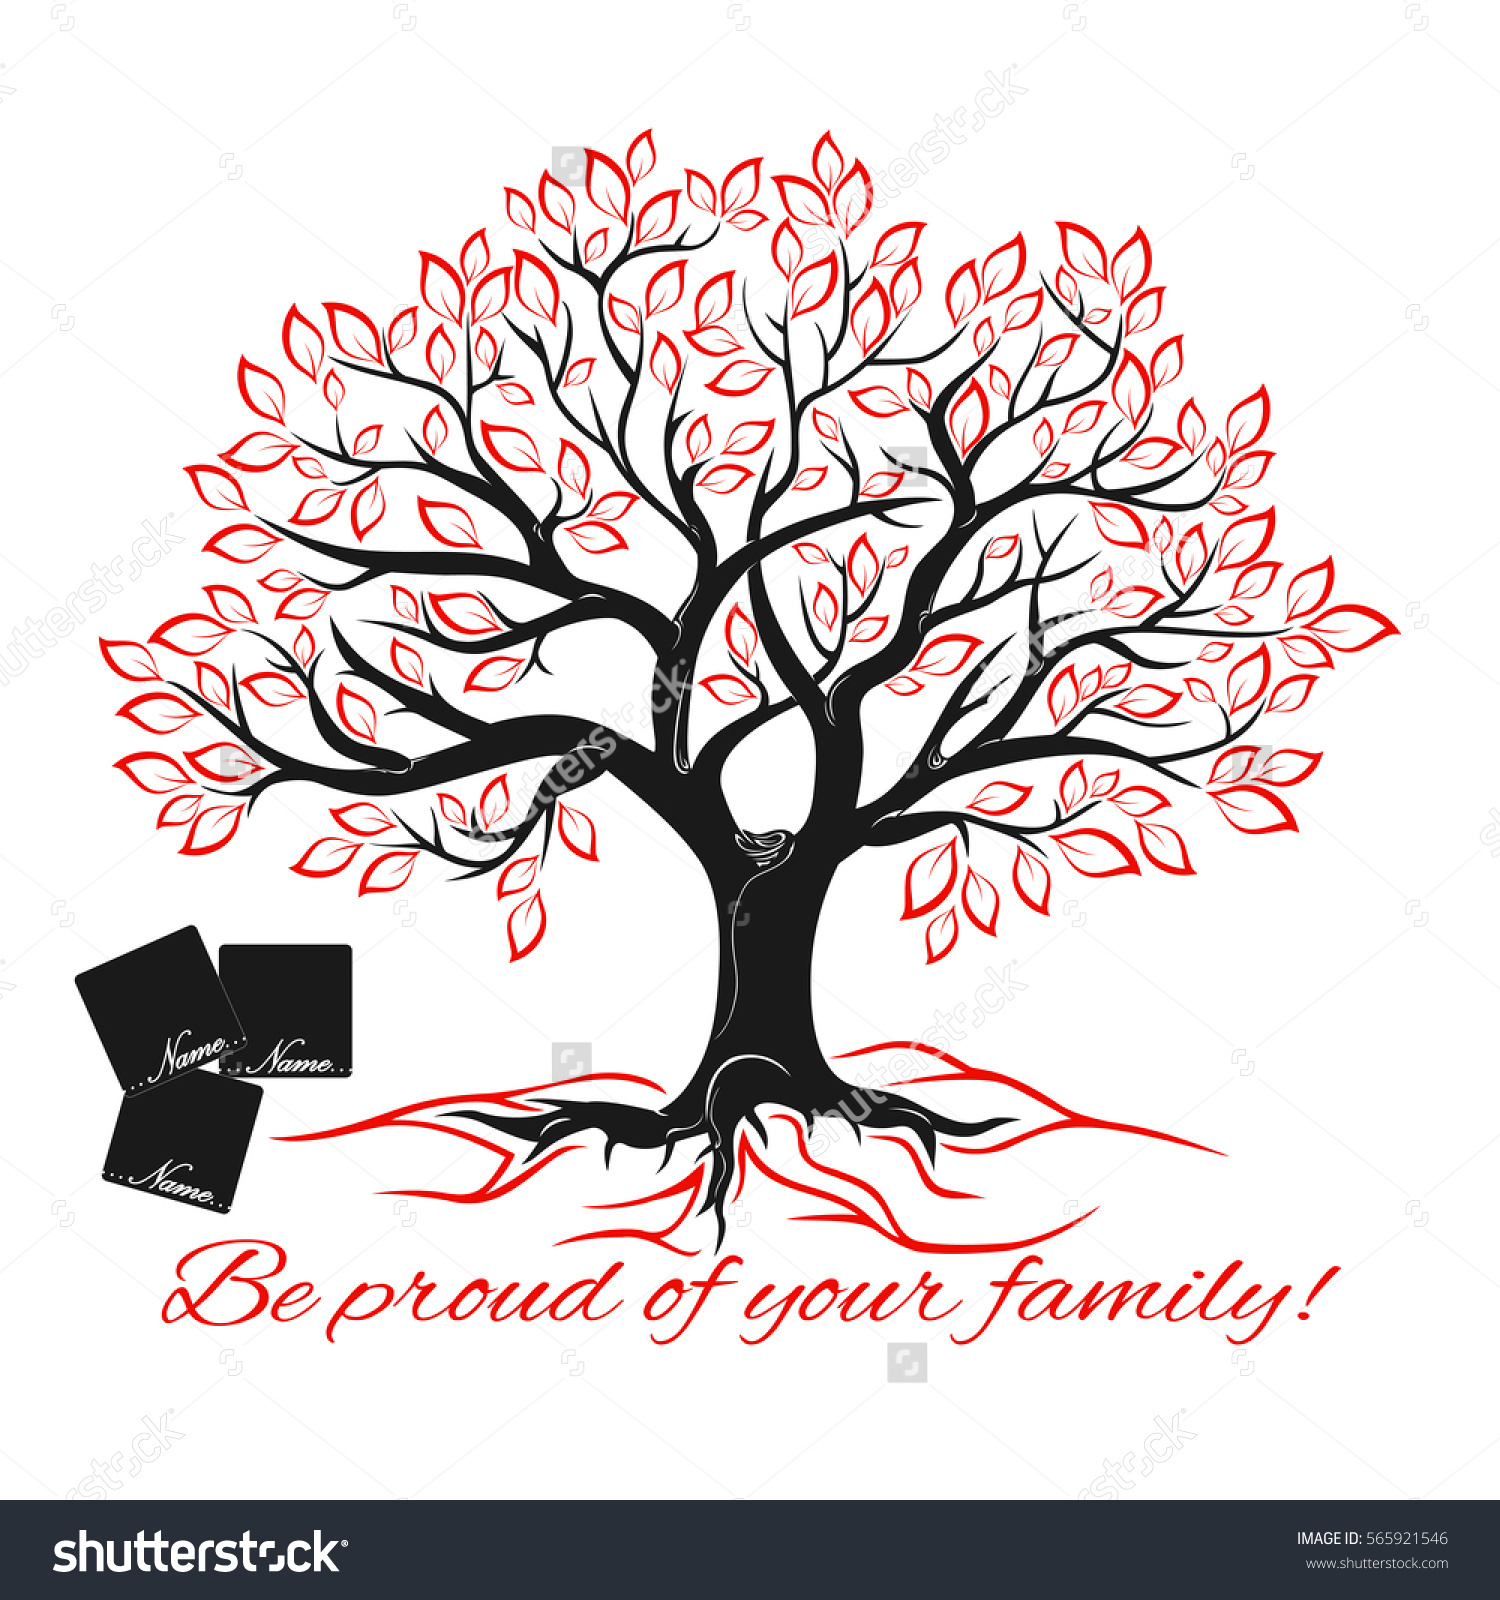 stock-vector-genealogical-tree-concept-family-tree-template-vector-illustration-isolated-on-white-background-565921546.jpg